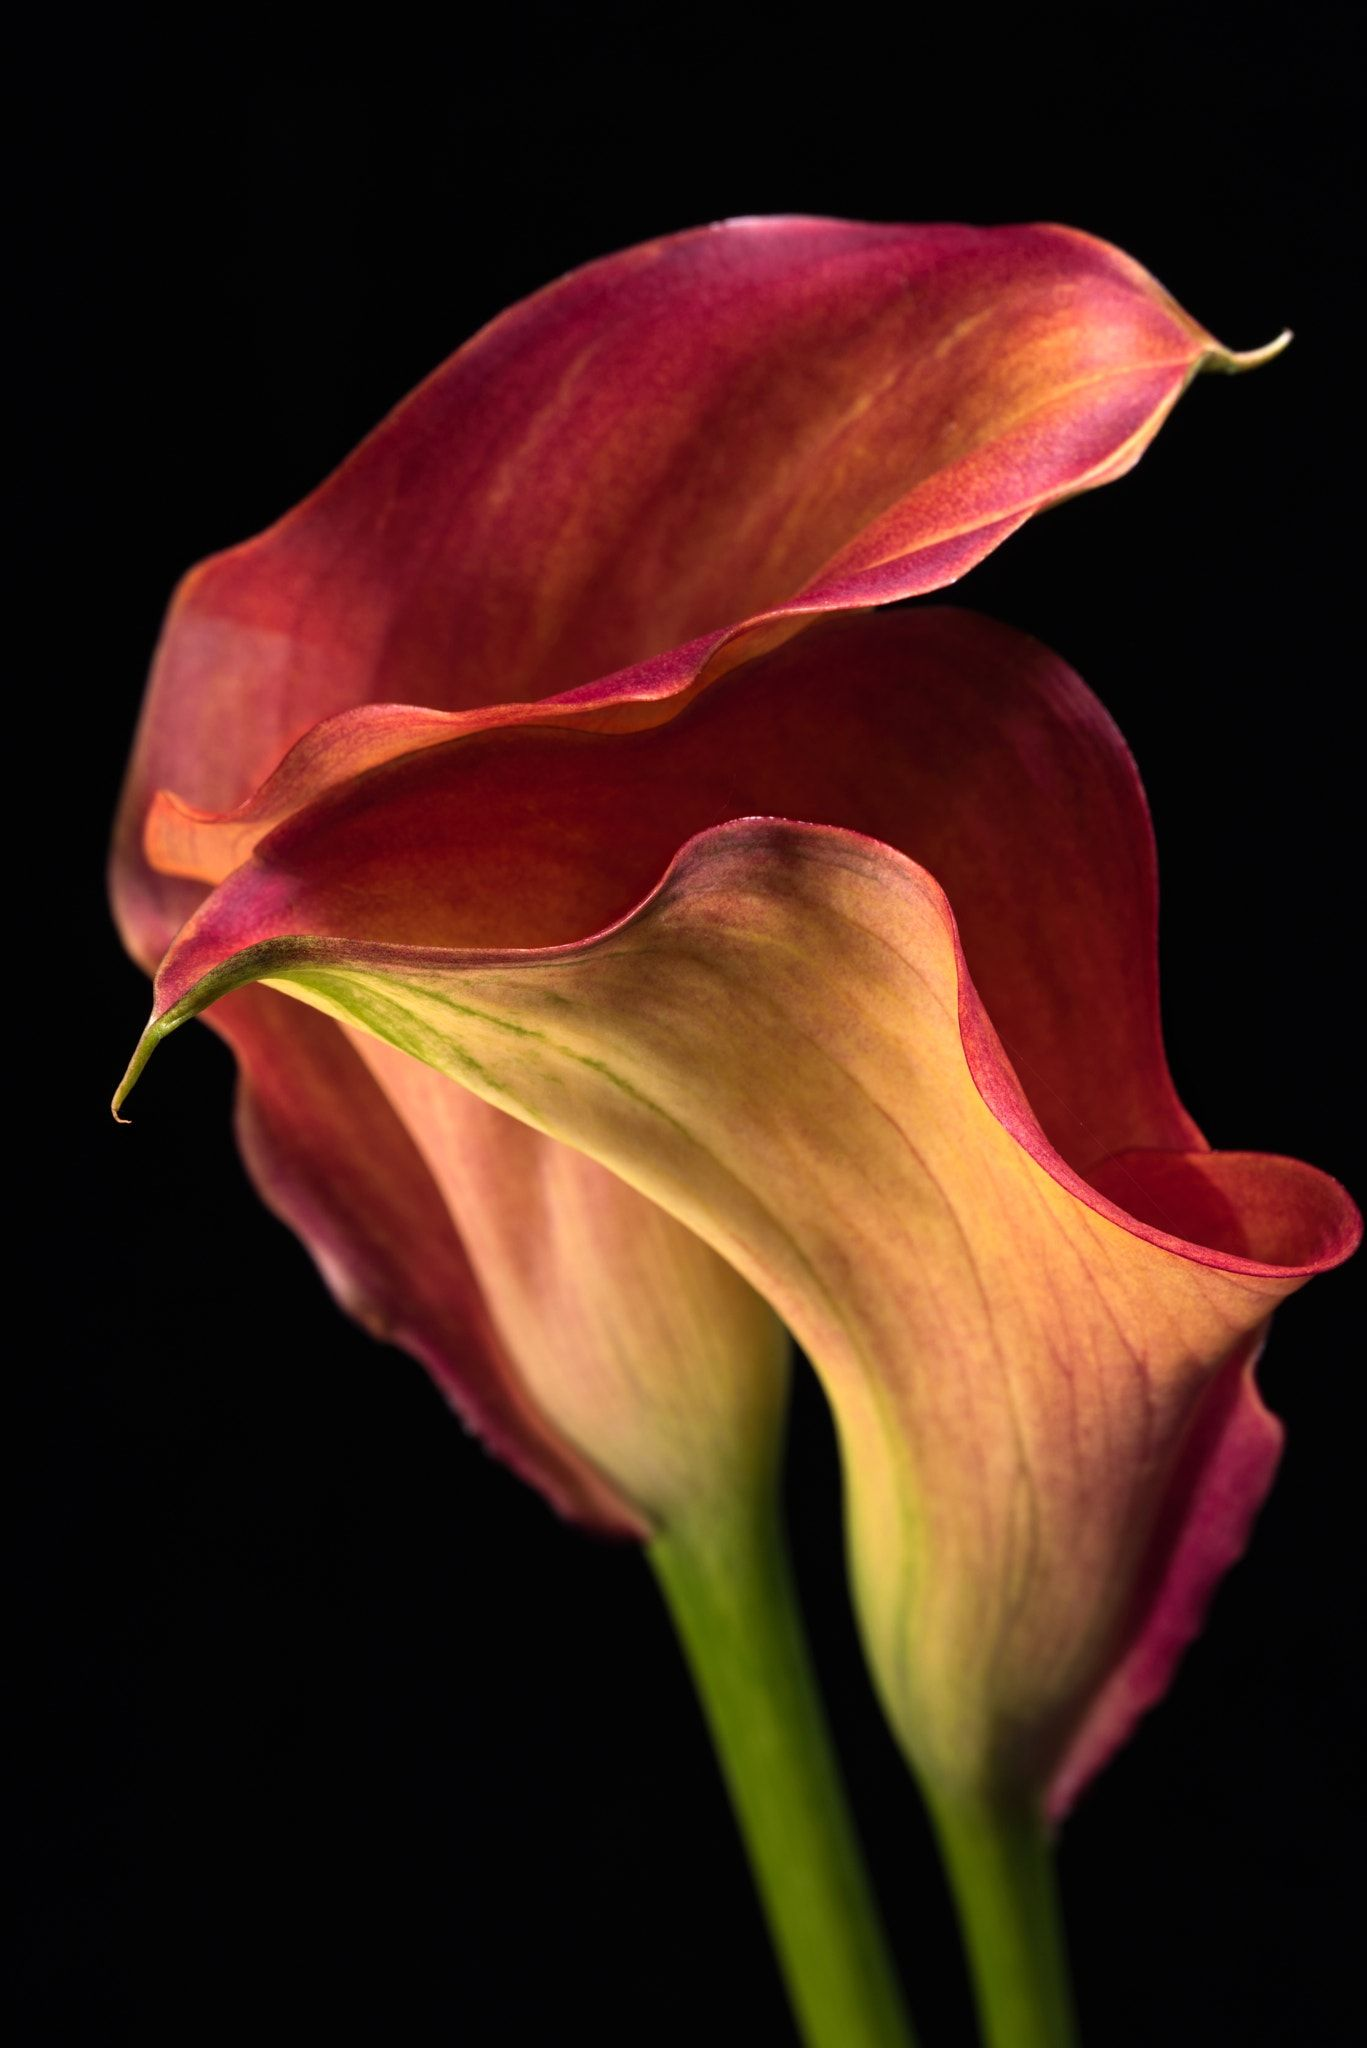 Two Callas A Fine Art Image Of Two Beautiful Calla Lily Flowers